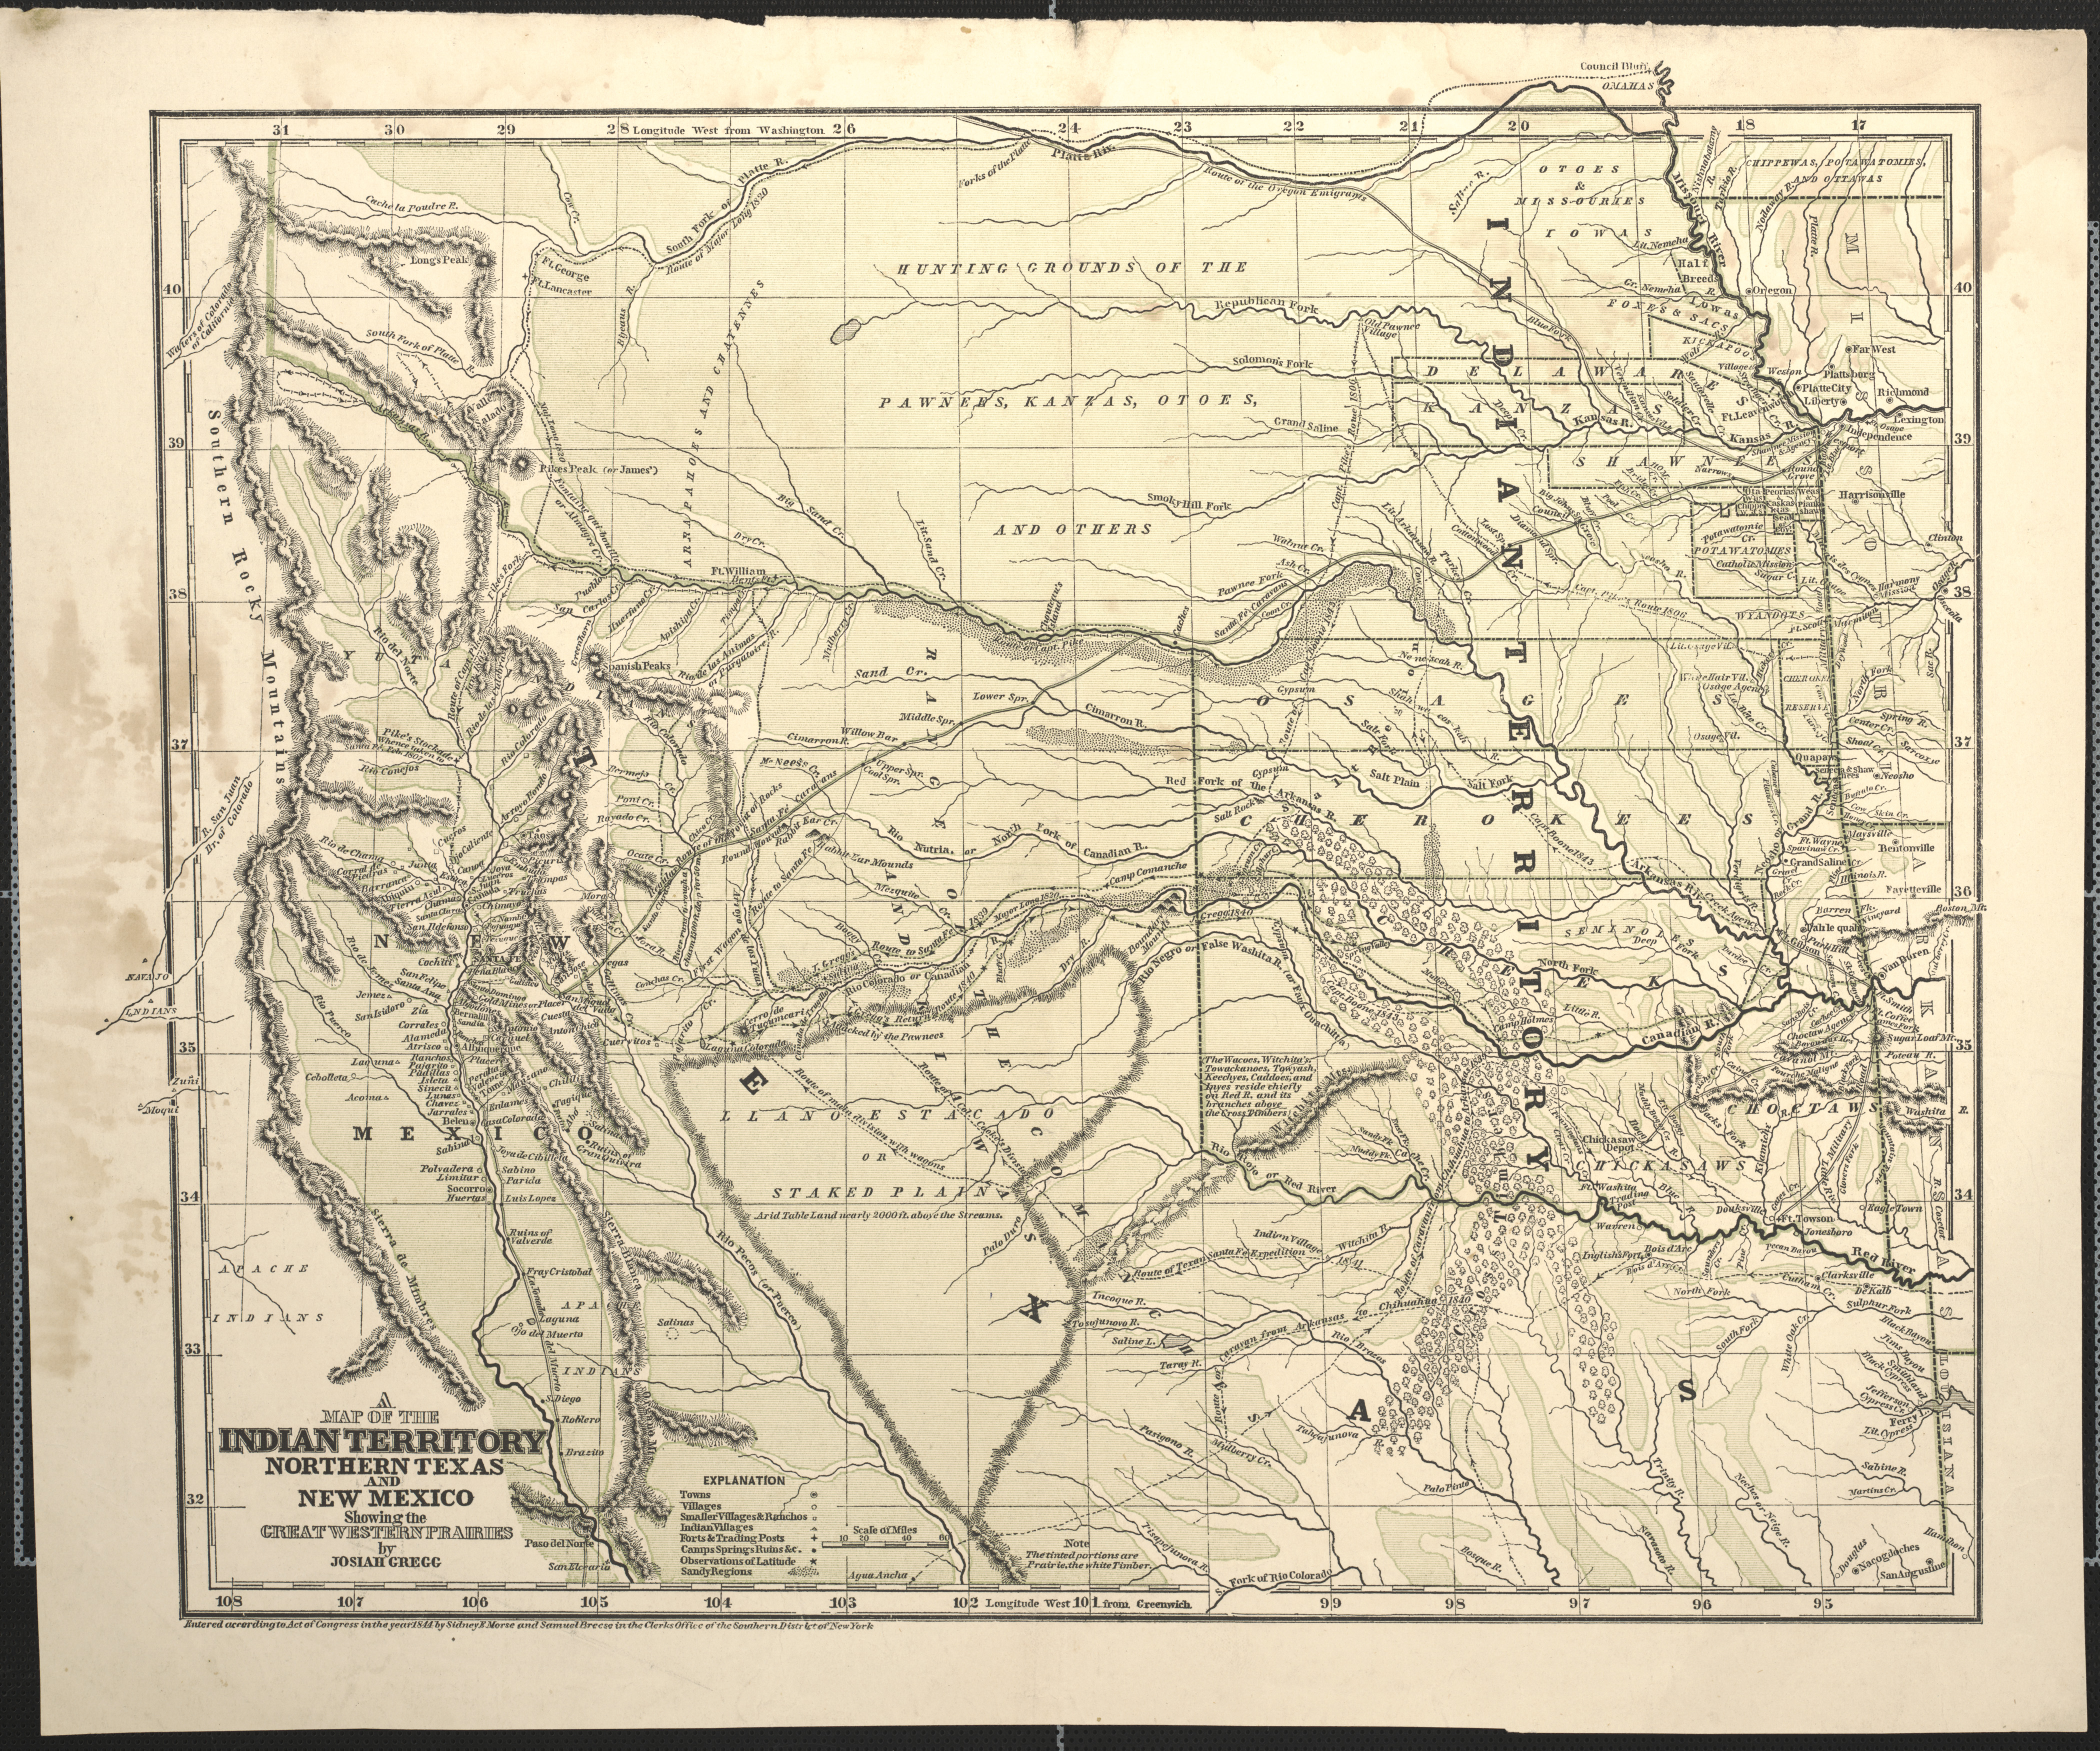 Maps: A Map of the Indian Territory, Northern Texas and New ... on railroad maps in us, flowers in us, states maps in us, stats in us, florida maps in us,